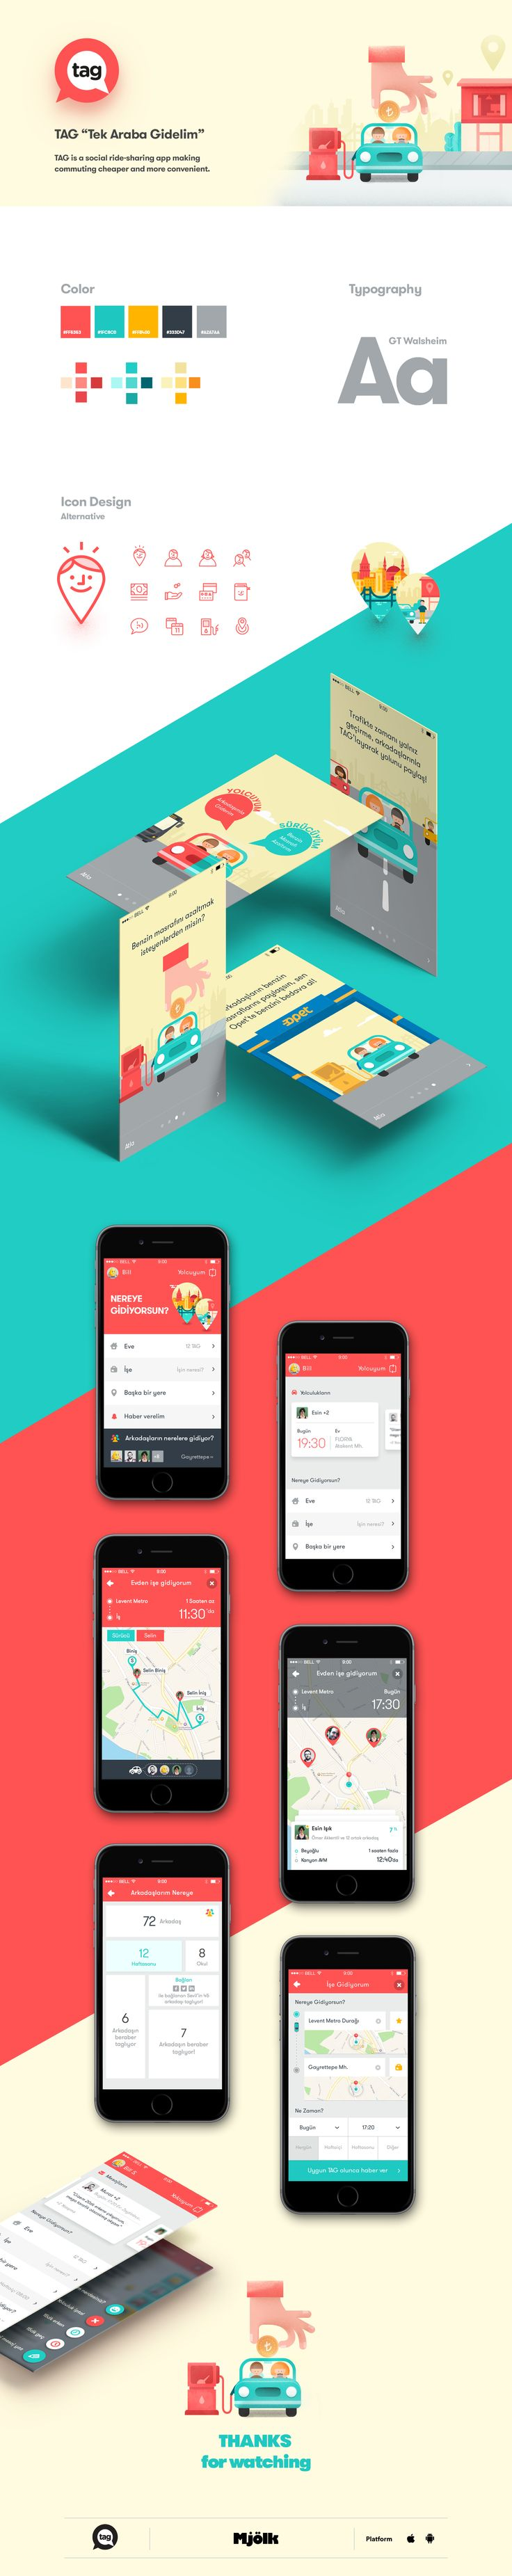 """TAG"" Mobile App UI Design on Behance"